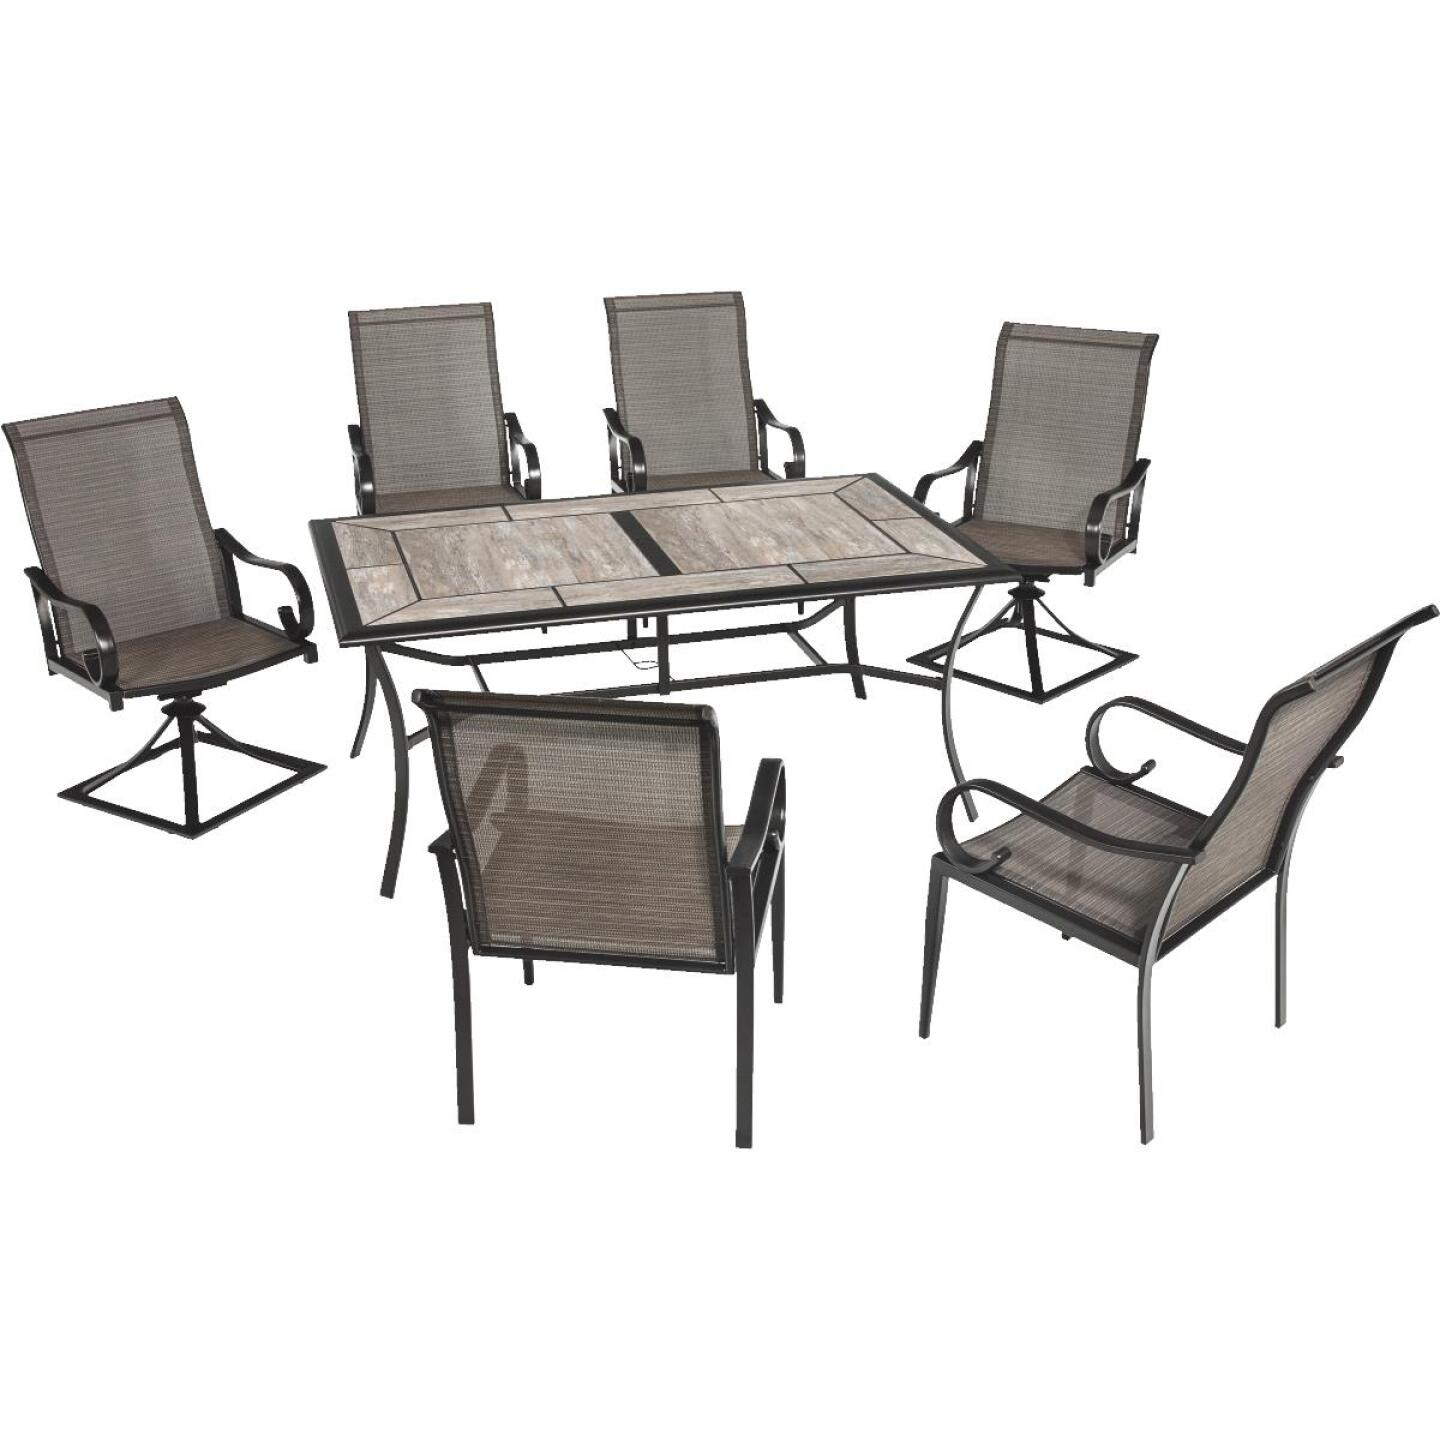 Outdoor Expressions Berkshire 7-Piece Dining Set Image 46